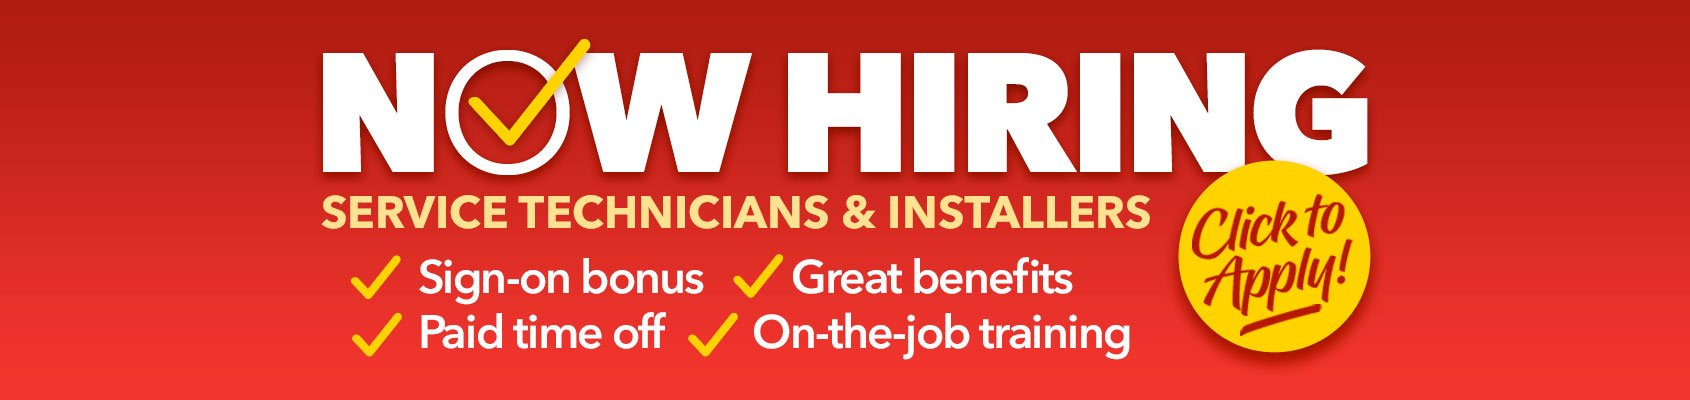 Now Hiring Service Technicians & Installers - Click to Apply!